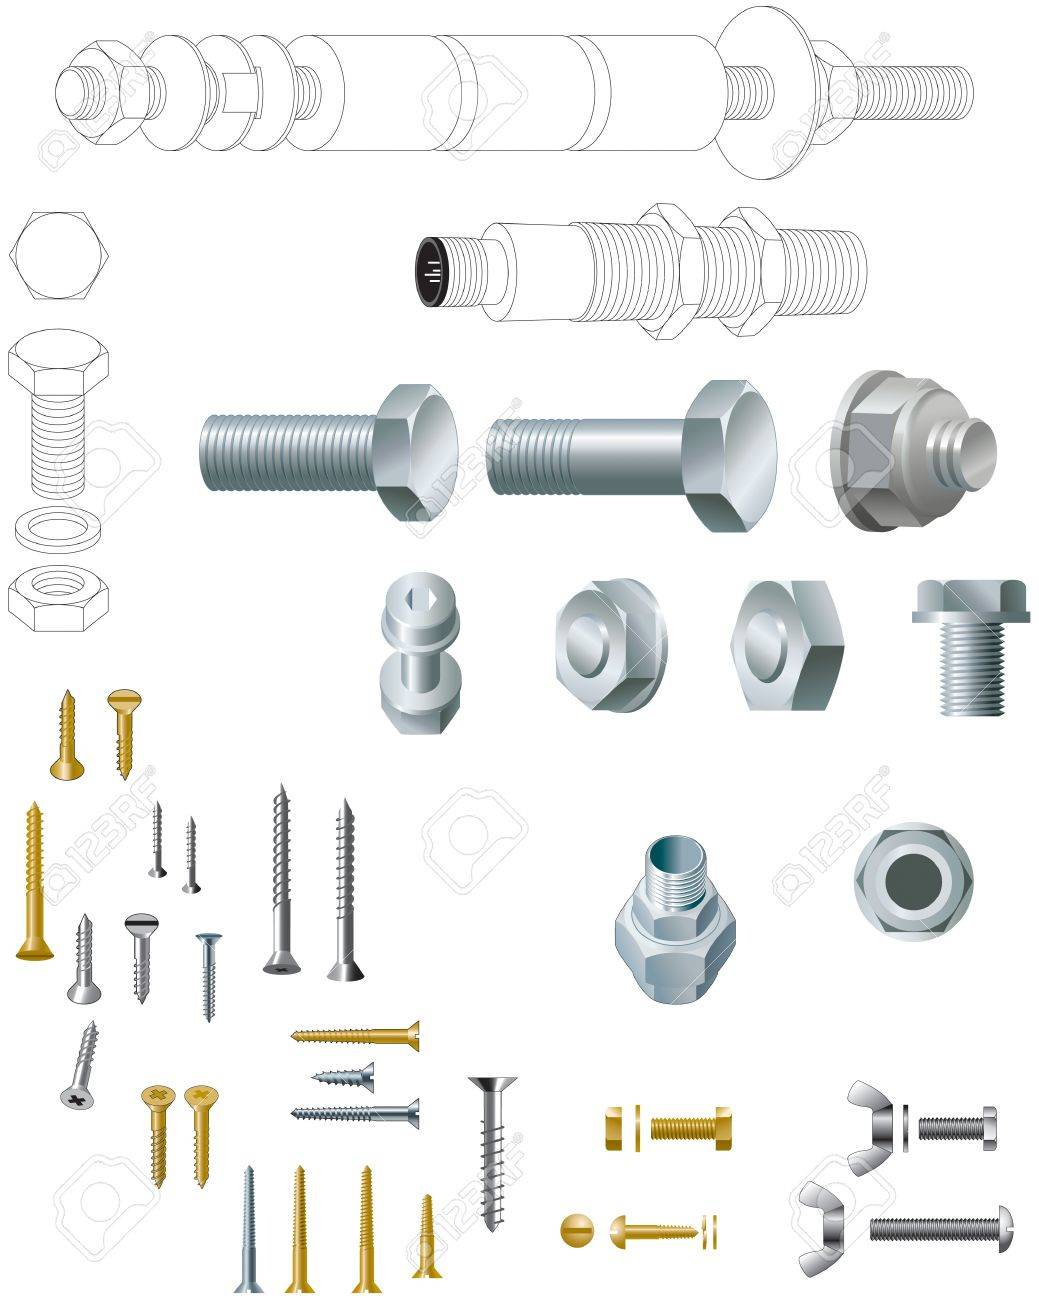 Nuts, bolts and screws, steel and brass